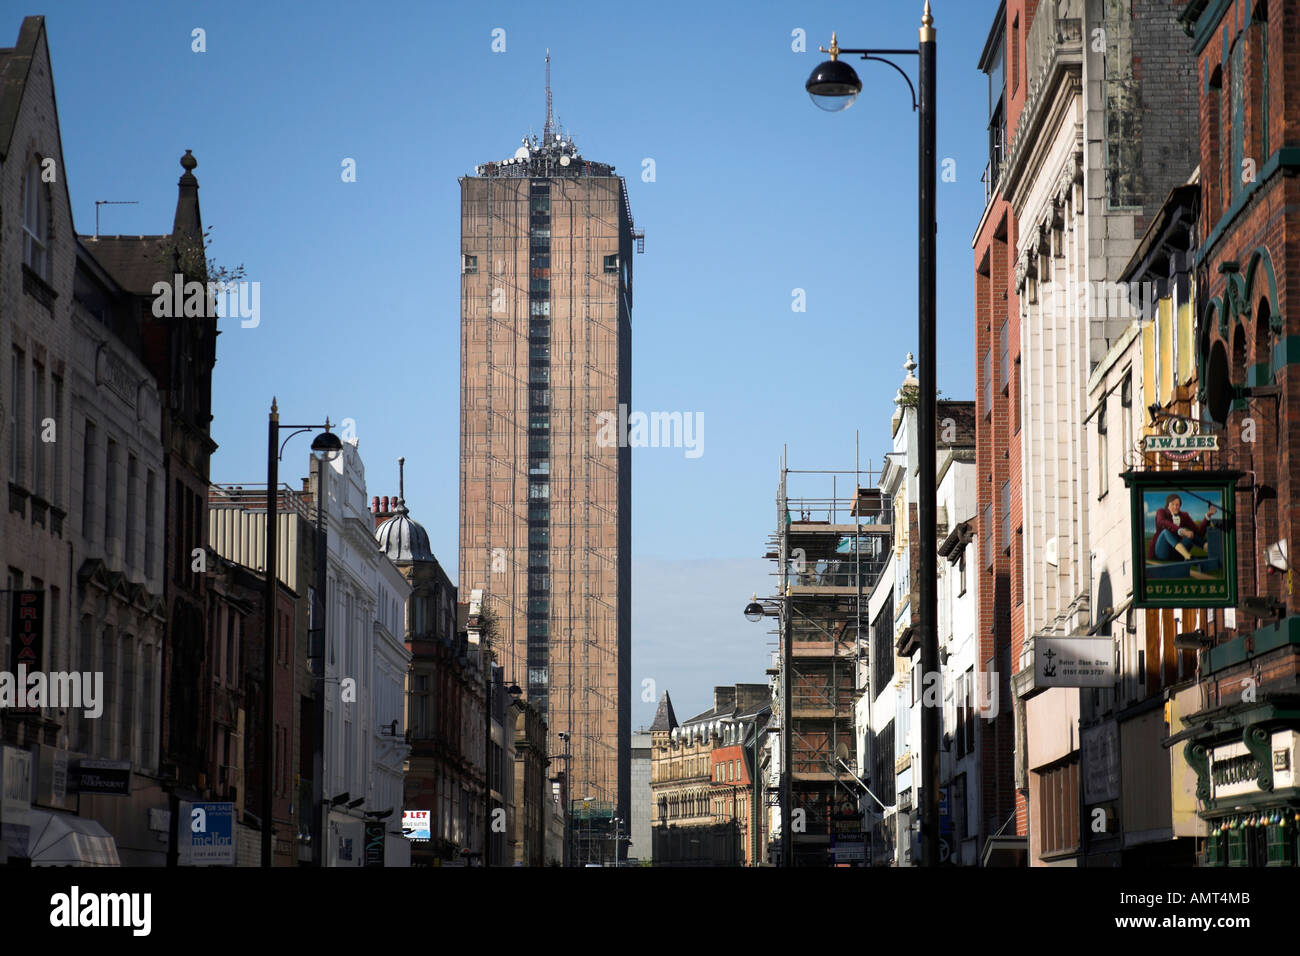 View to the south down Oldham Street one of Manchester s main streets looking towards the tower at Piccadilly Plaza UK 2006 - Stock Image